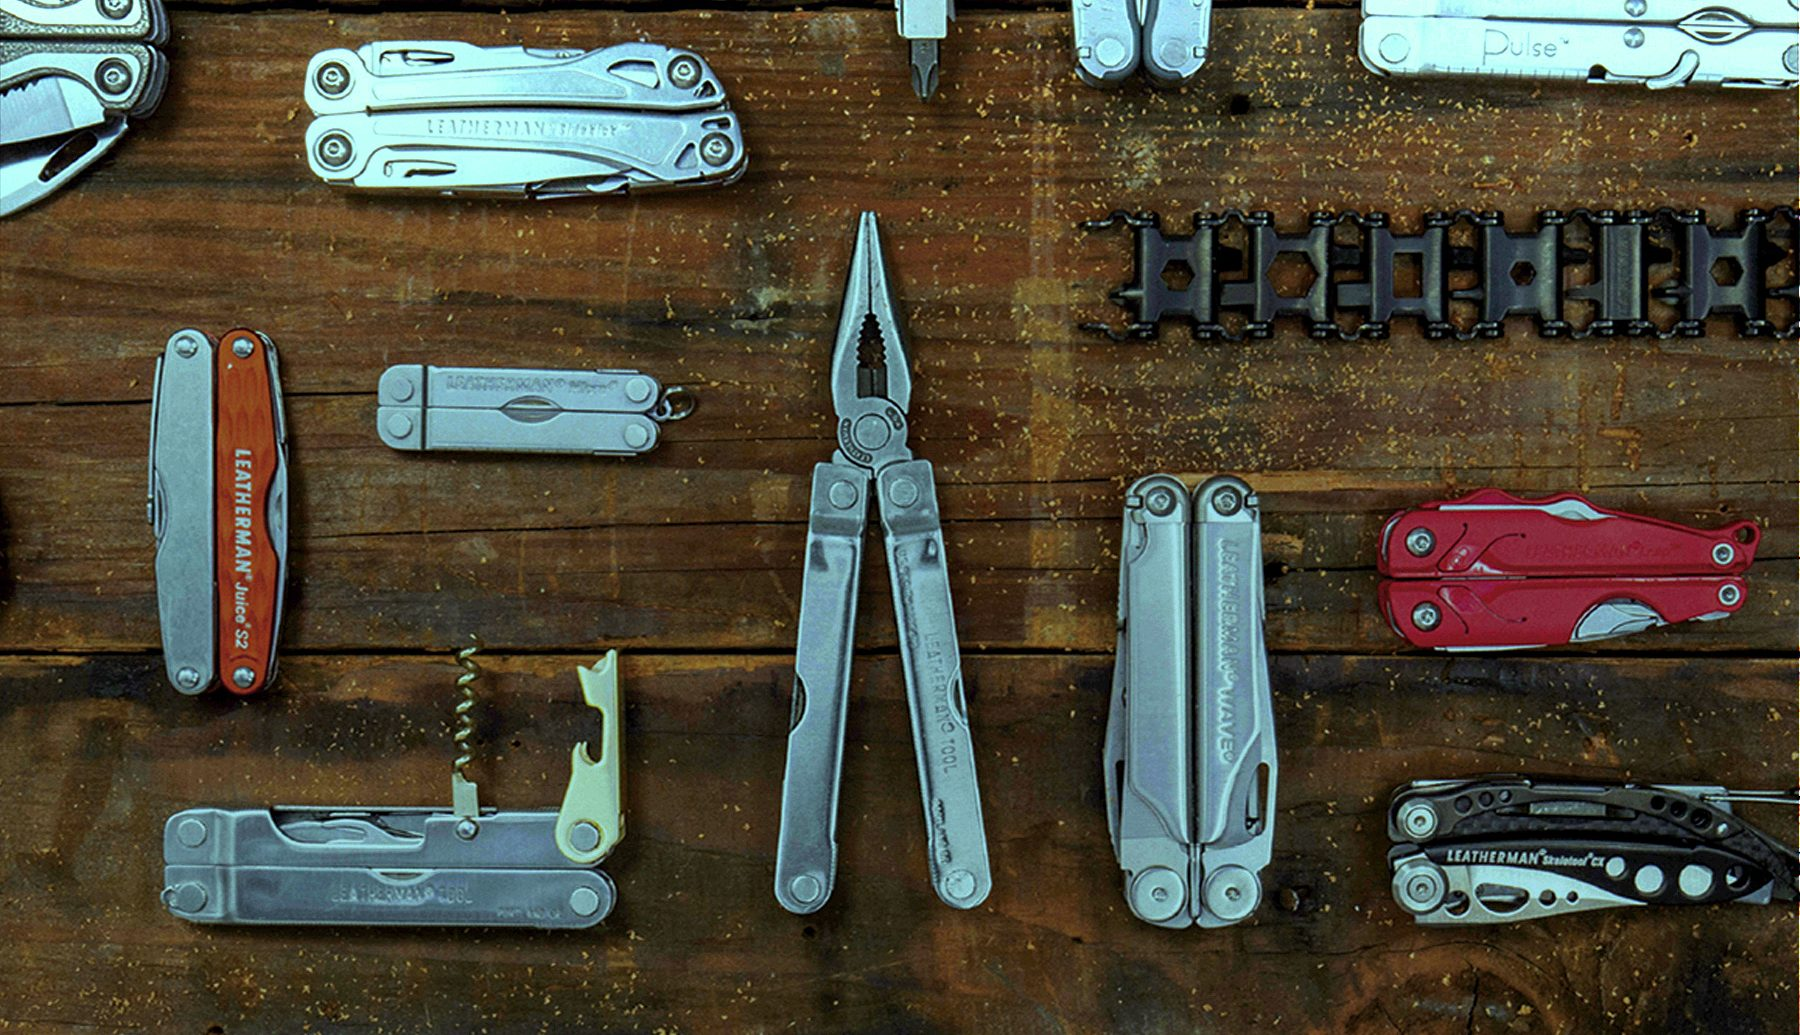 20 Leatherman Multi-Tools and Knives That Make Perfect Father's Day Gifts